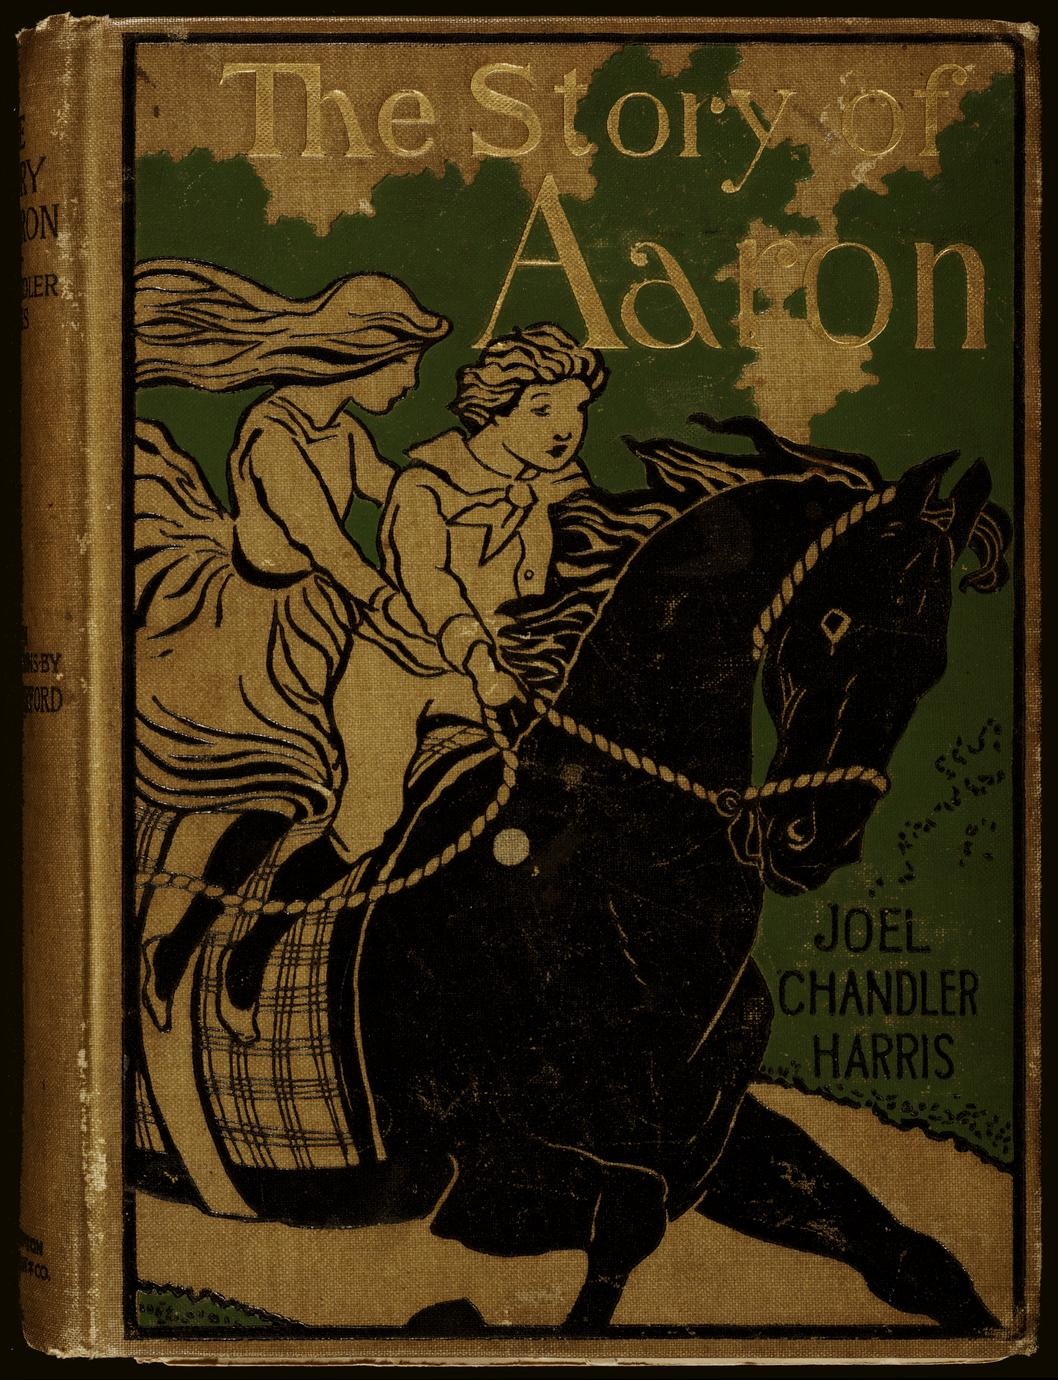 The story of Aaron (so named) : the son of Ben Ali ; told by his friends and acquaintances (1 of 3)